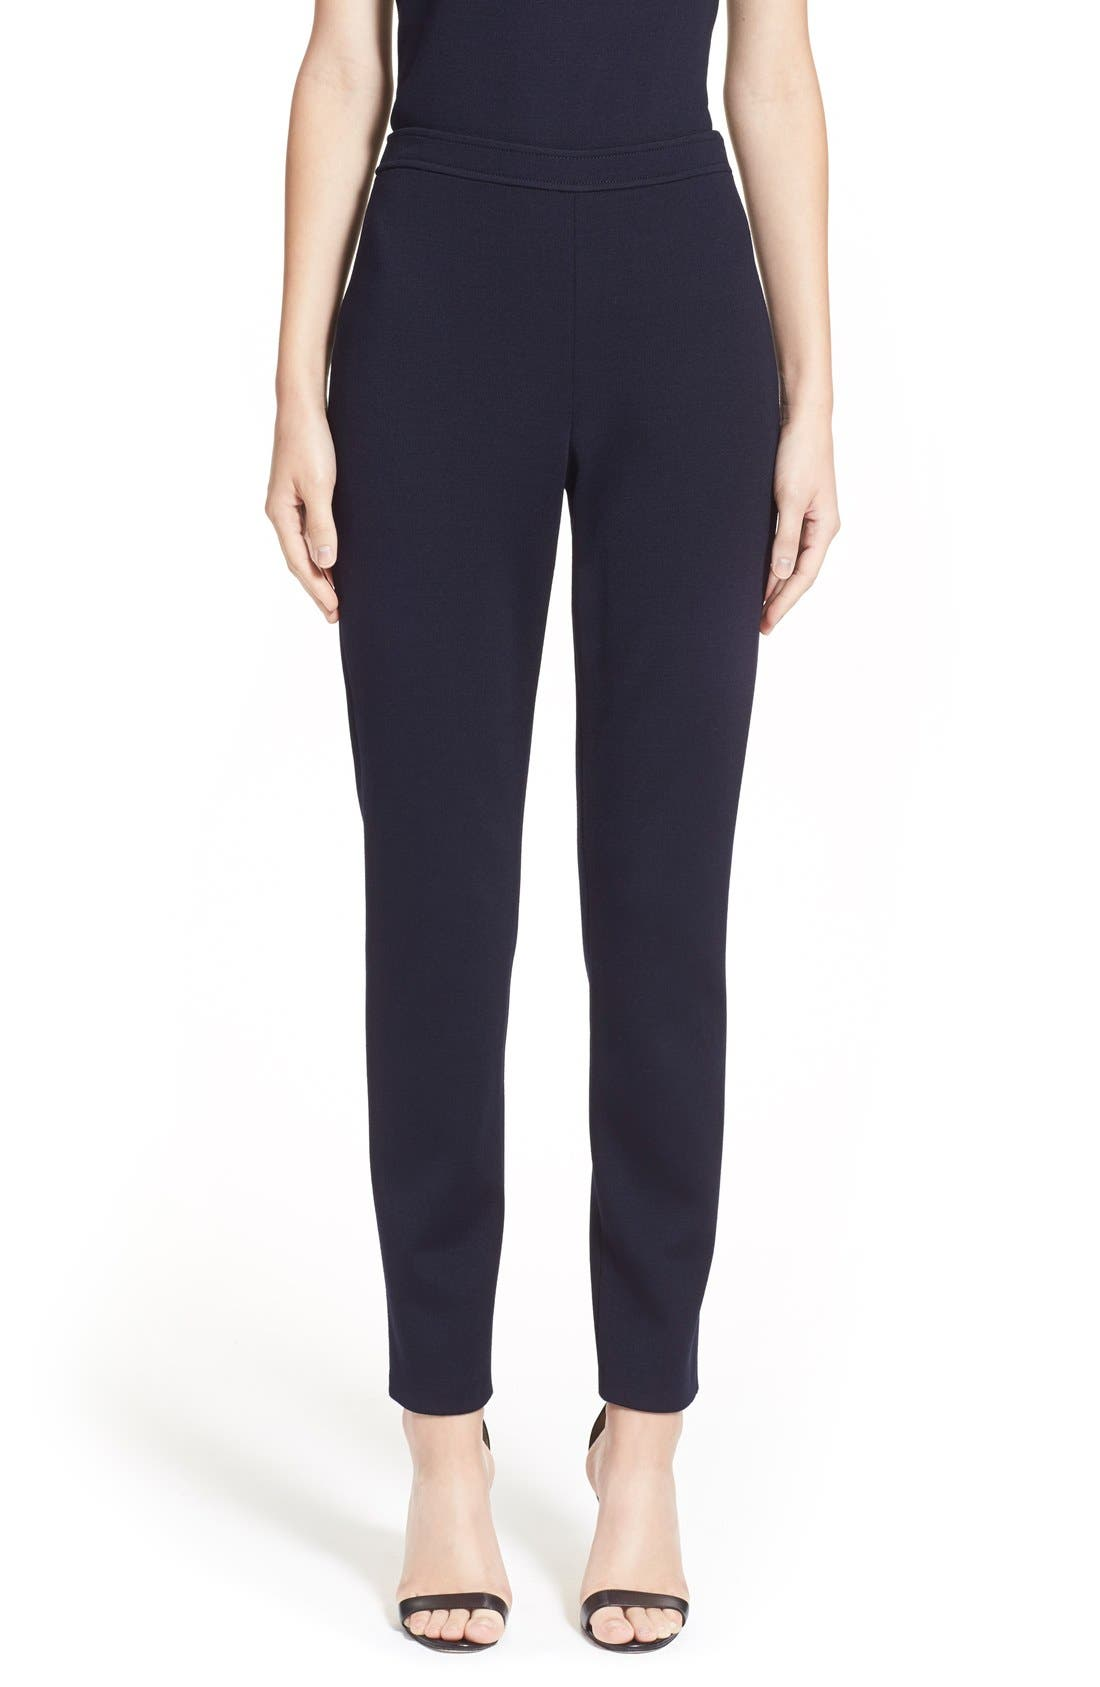 'Alexa' Stretch Milano Knit Ankle Pants,                             Main thumbnail 1, color,                             NAVY